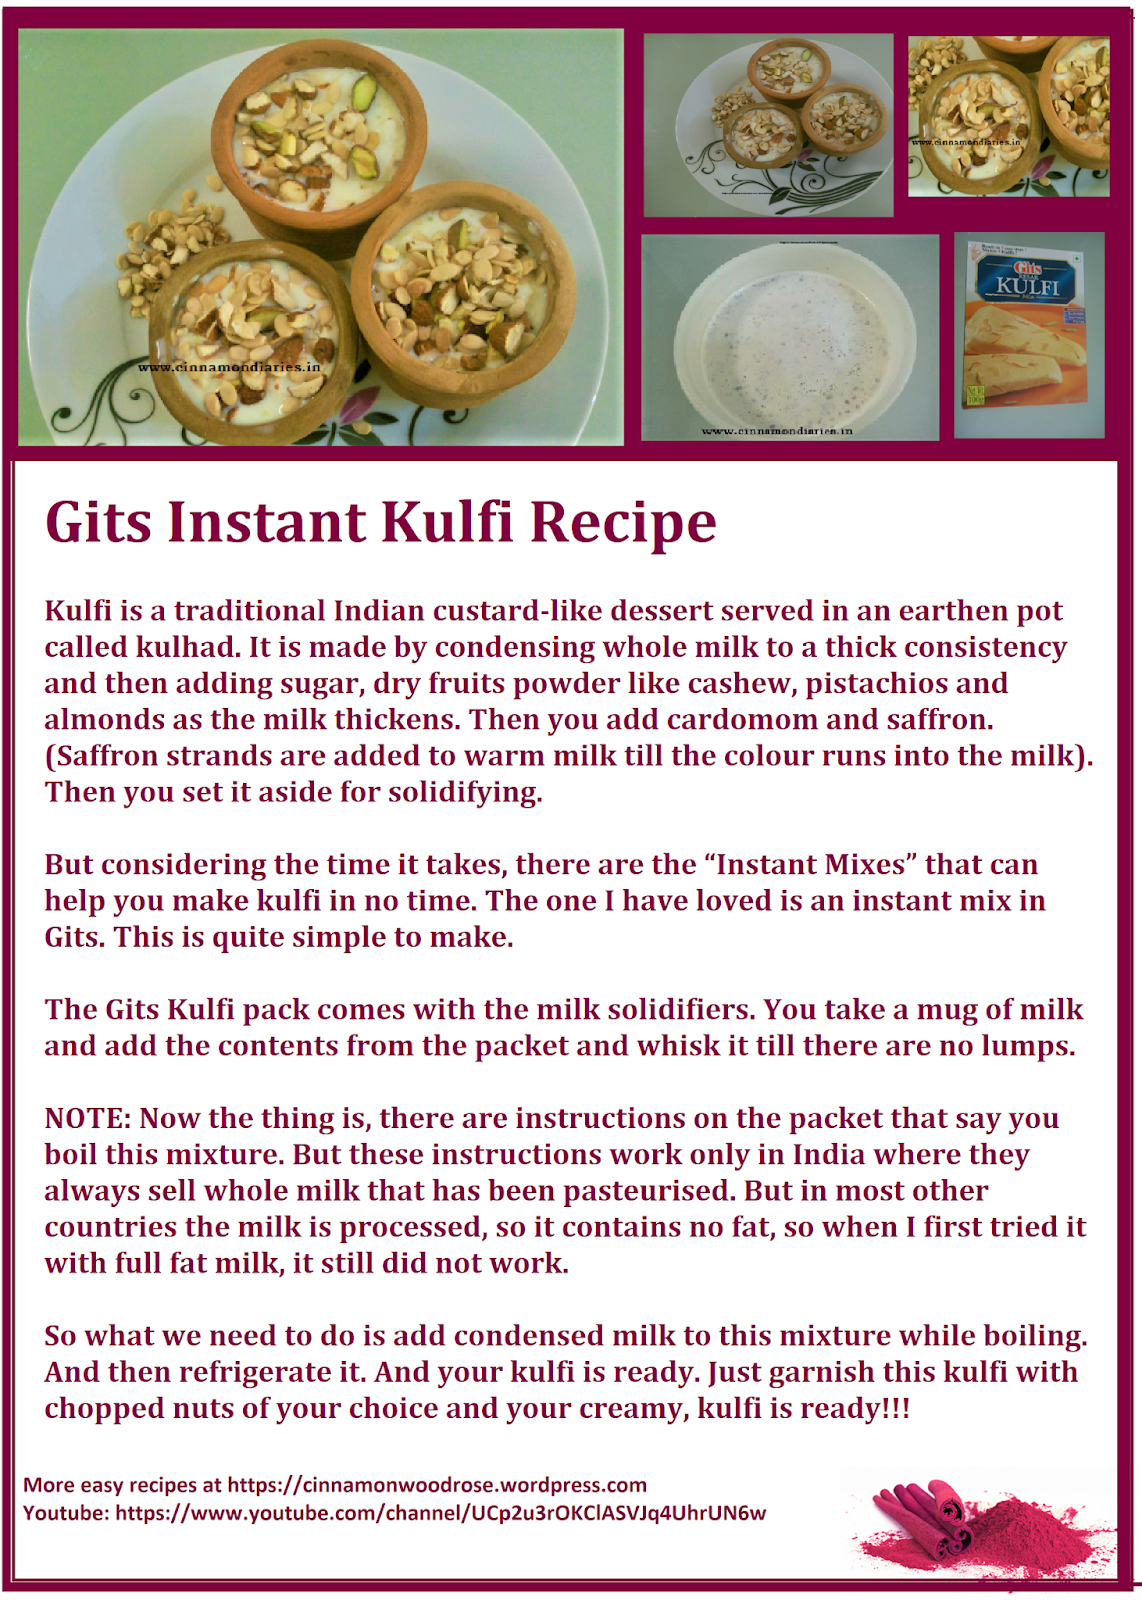 Gits instant kulfi easy dessert recipe recipes dining gits instant kulfi easy dessert recipe forumfinder Image collections